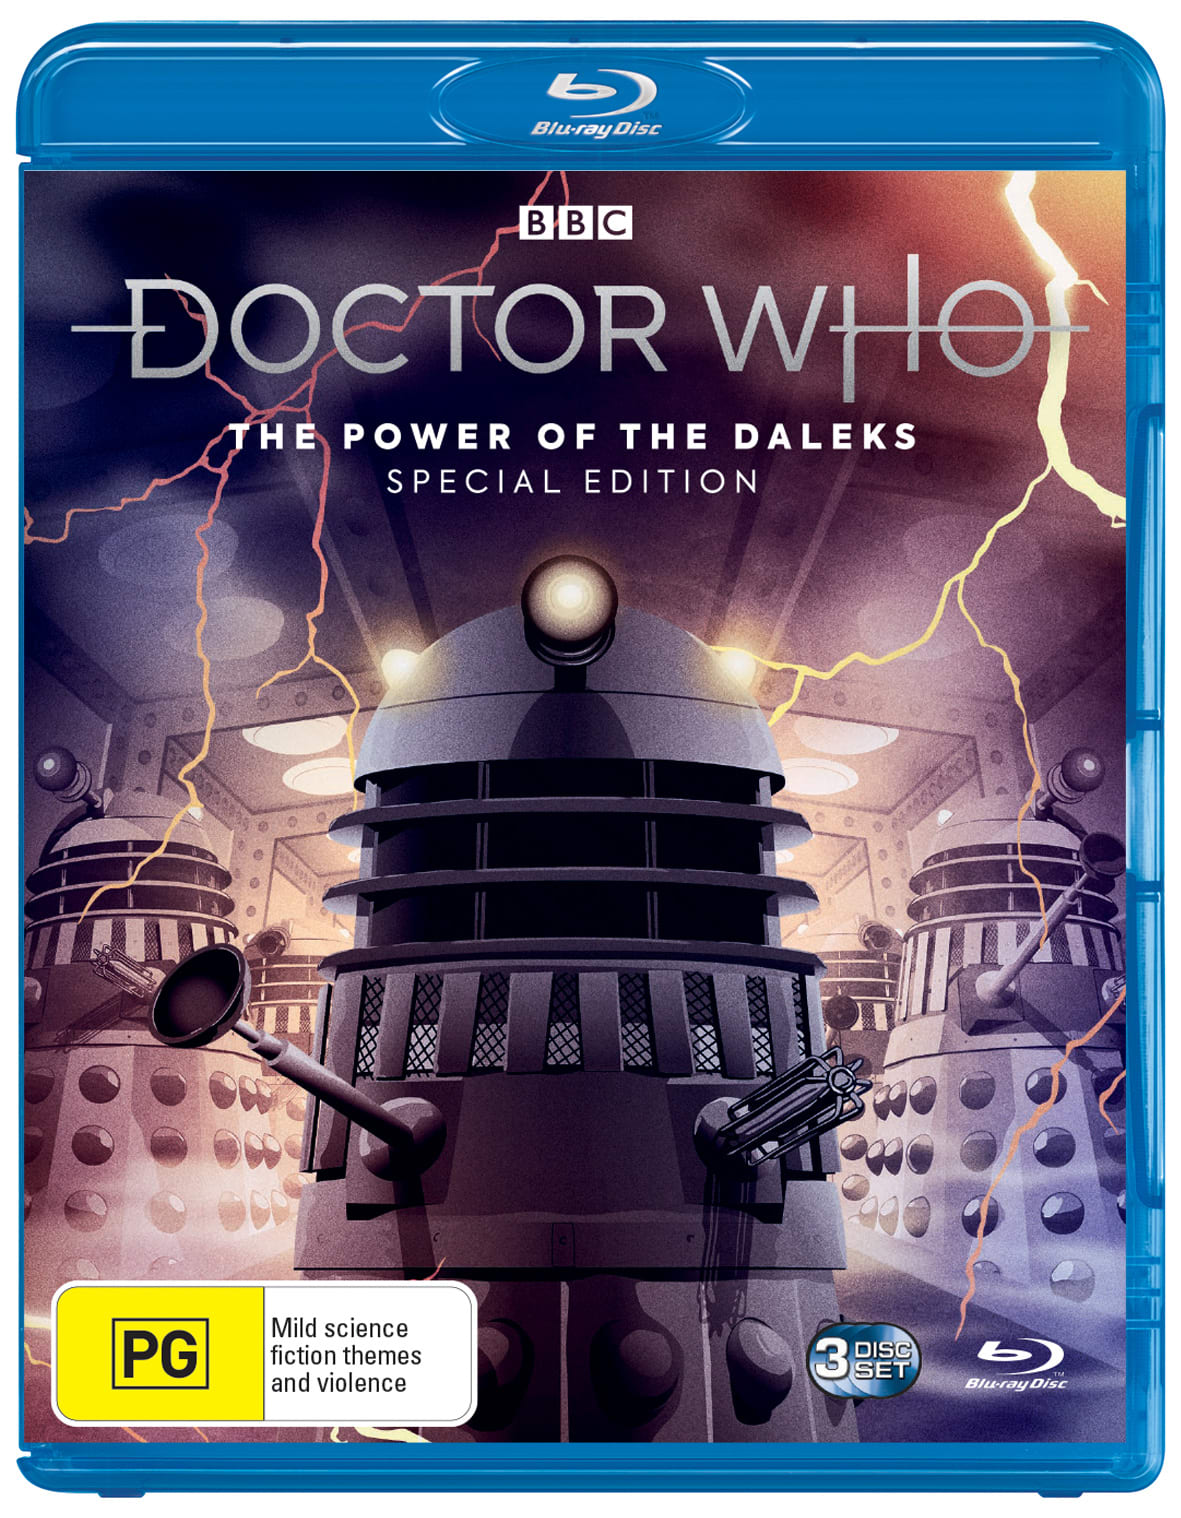 Doctor Who: The Power of the Daleks (Box Set) [Blu-ray]